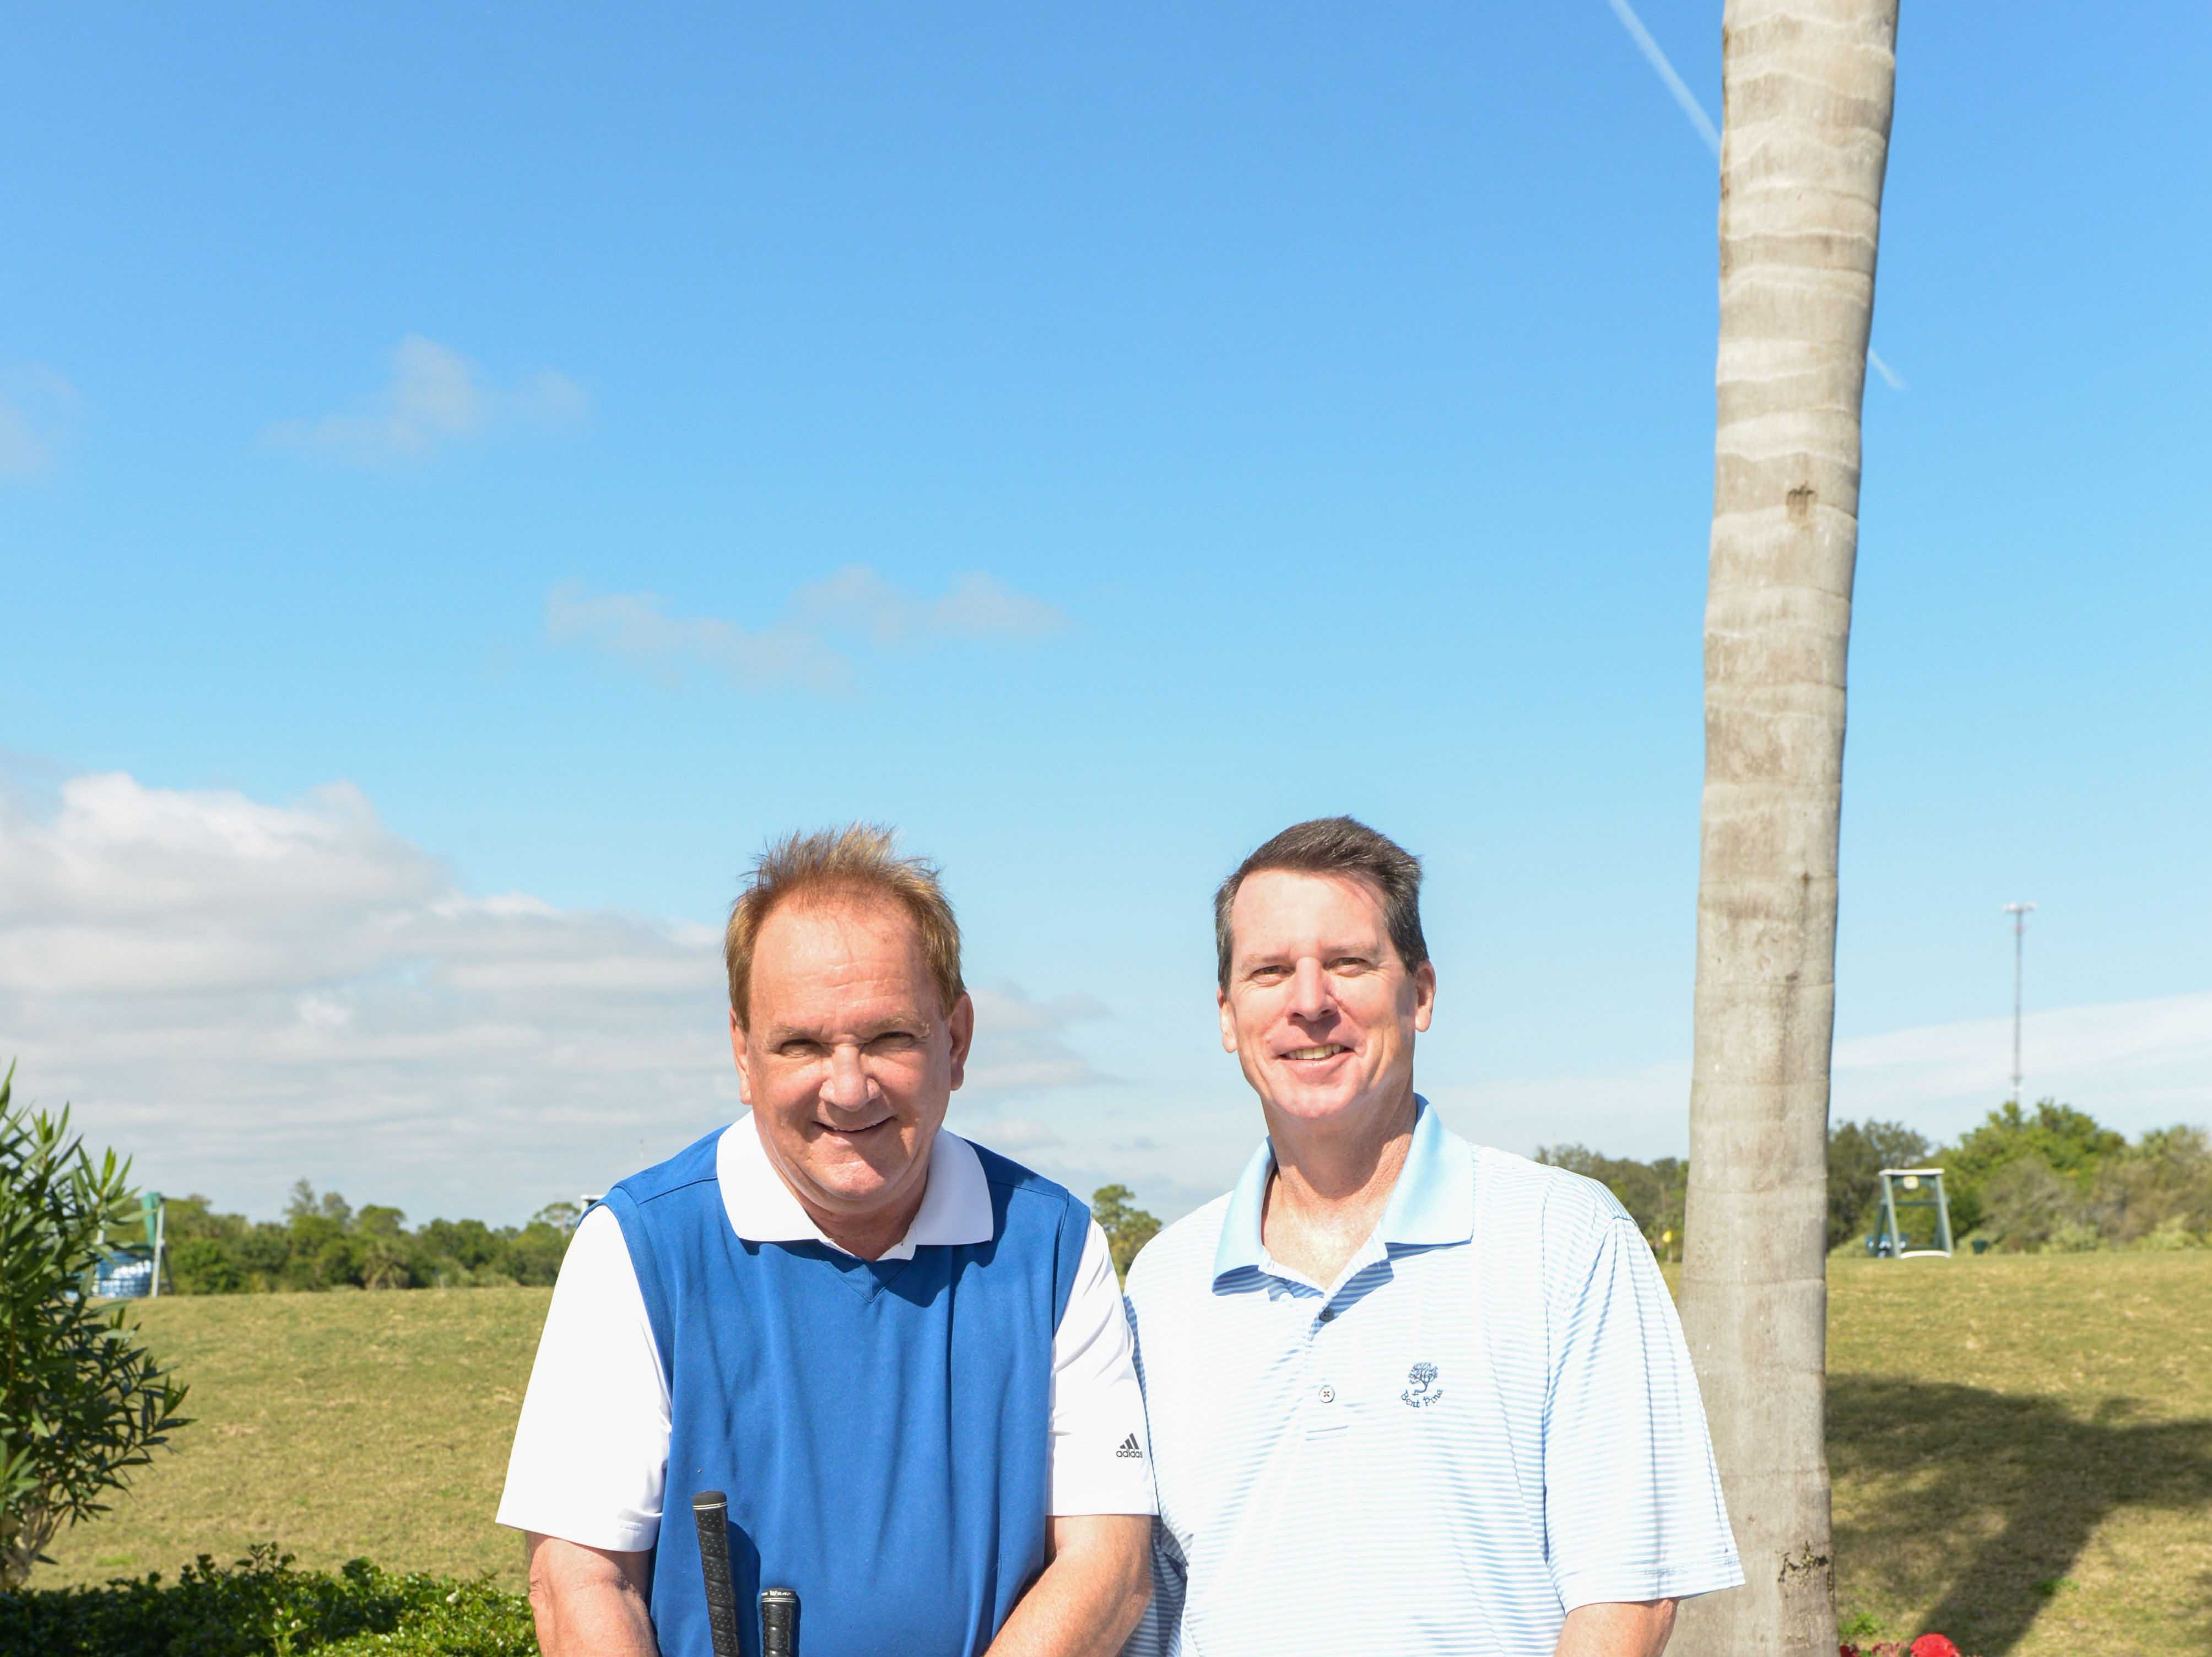 Dennis Witherow, left, with Jim Davis of Fidelity Investments at Hawk's Nest Golf Club for the Big Brothers Big Sisters Golf Tournament on Feb. 4.